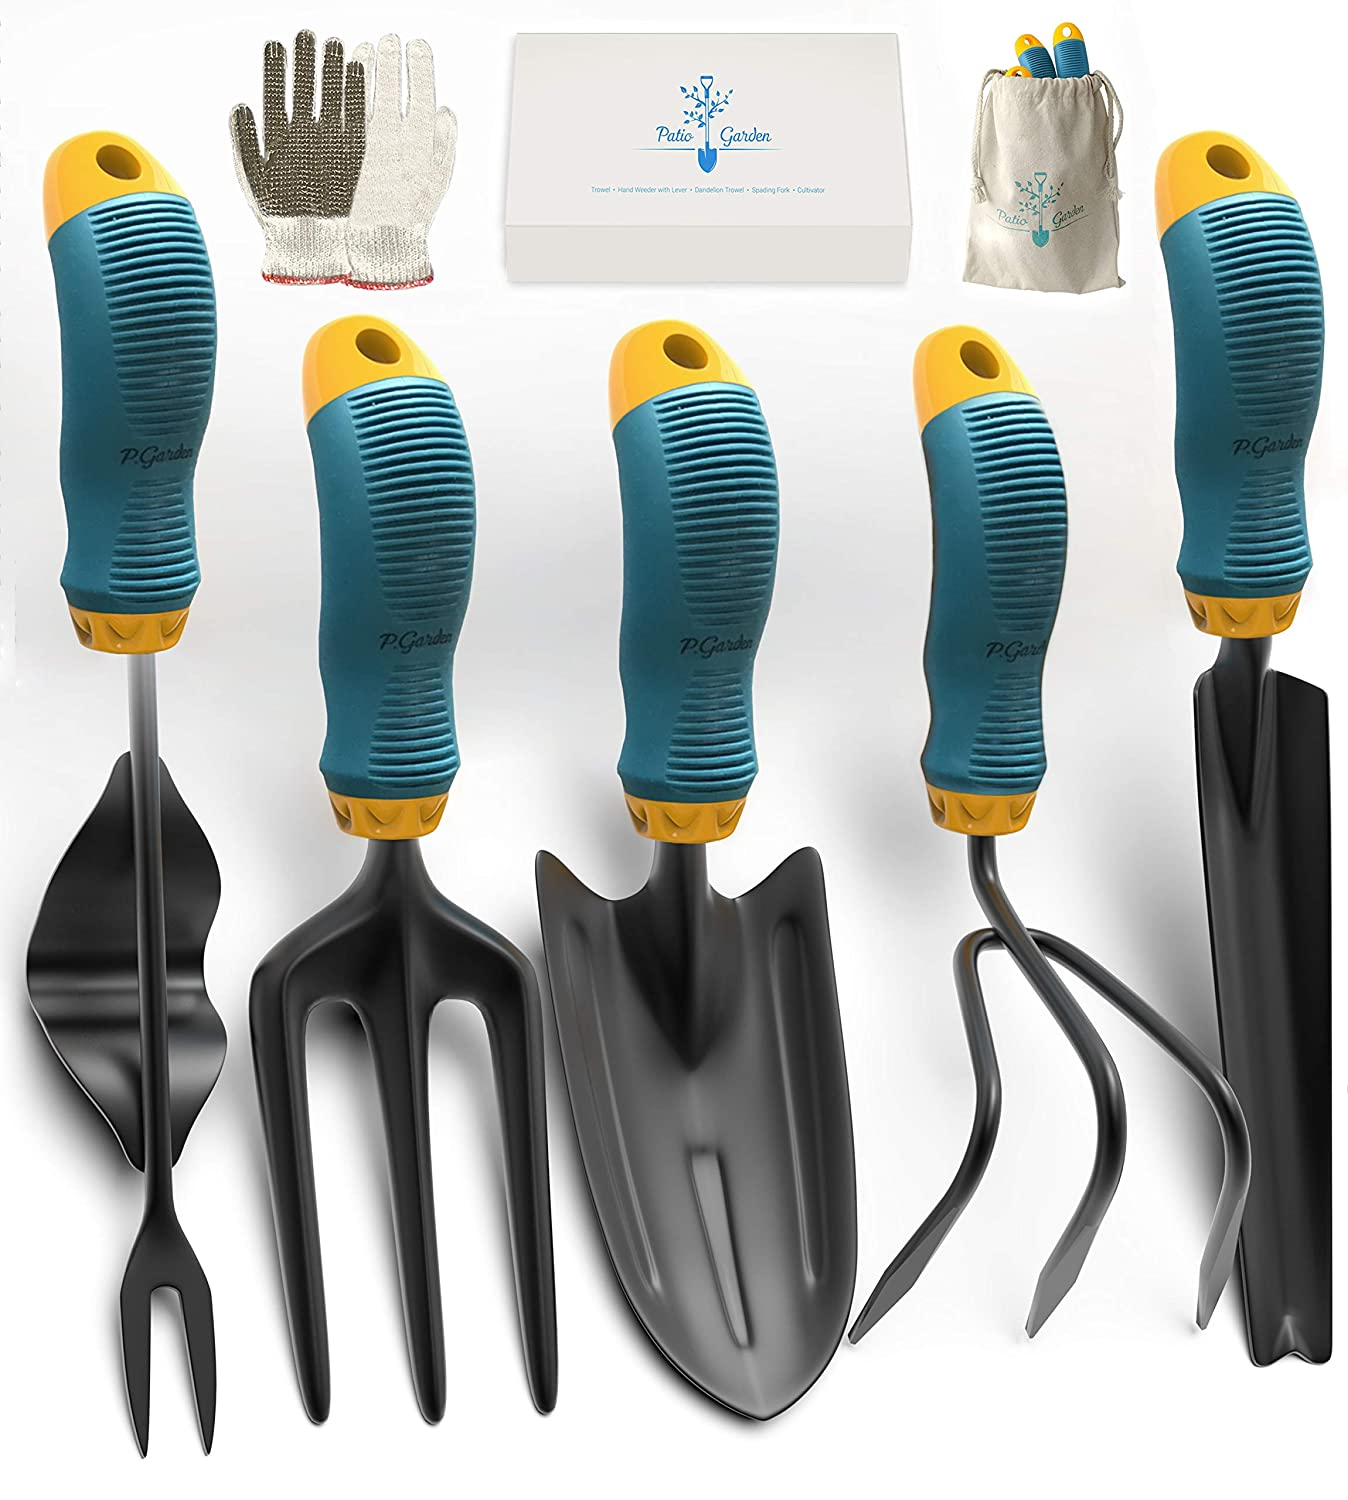 Gardening Tools Set from Alloy Steel - Heavy Duty Garden Tool Set with Rubber Non-Slip Handle - Gardening Kit withGloves and Bag - Ergonomic Garden Hand Tools - Gardening Gifts for Men and Women